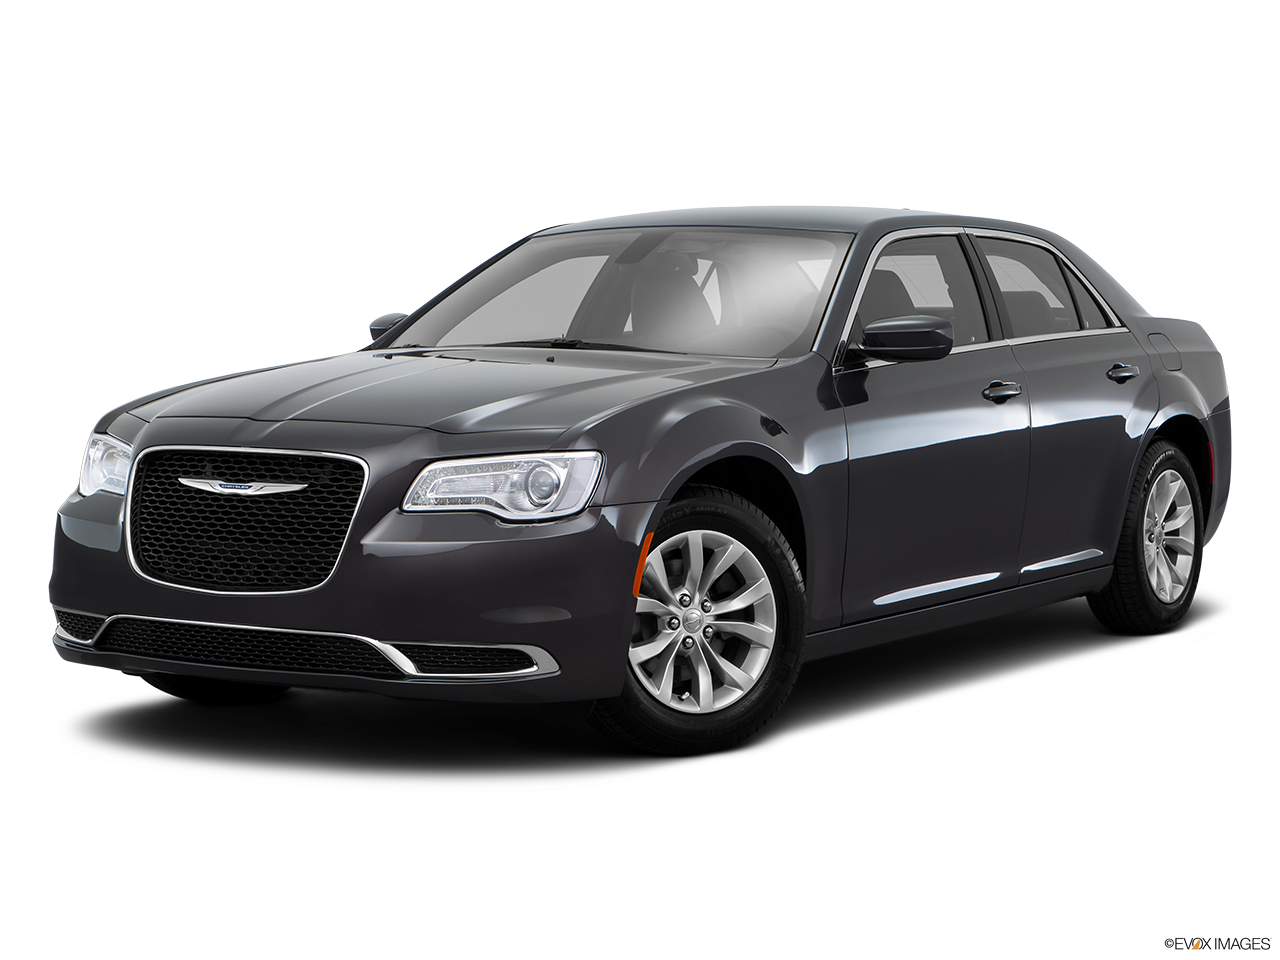 Chrysler 300 2016 Hemi >> New 2016 Chrysler 300 | Premier Chrysler Dodge Jeep RAM